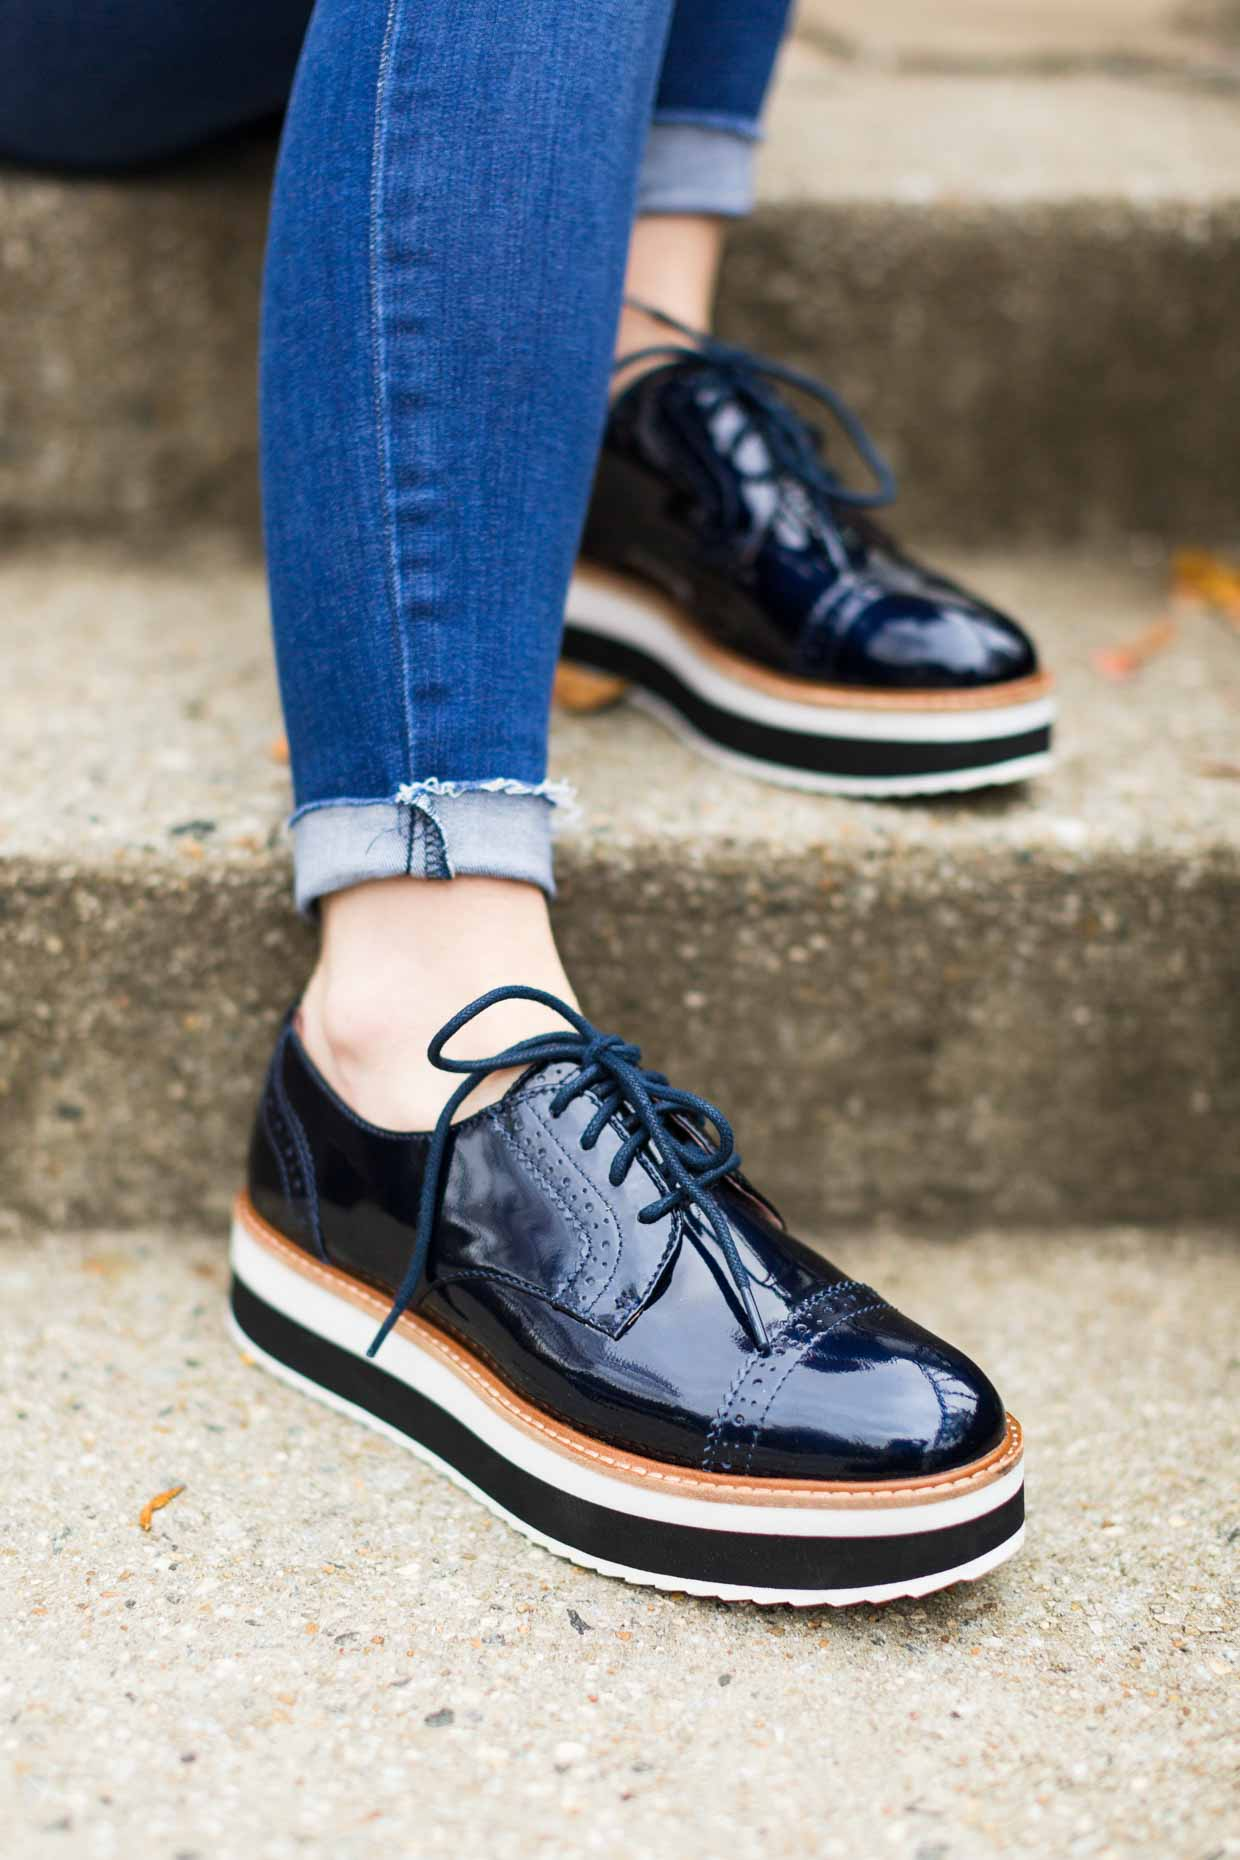 7f3e0cf2d80 How To Style Derby Shoes - Women's Fashion - Poor Little It Girl